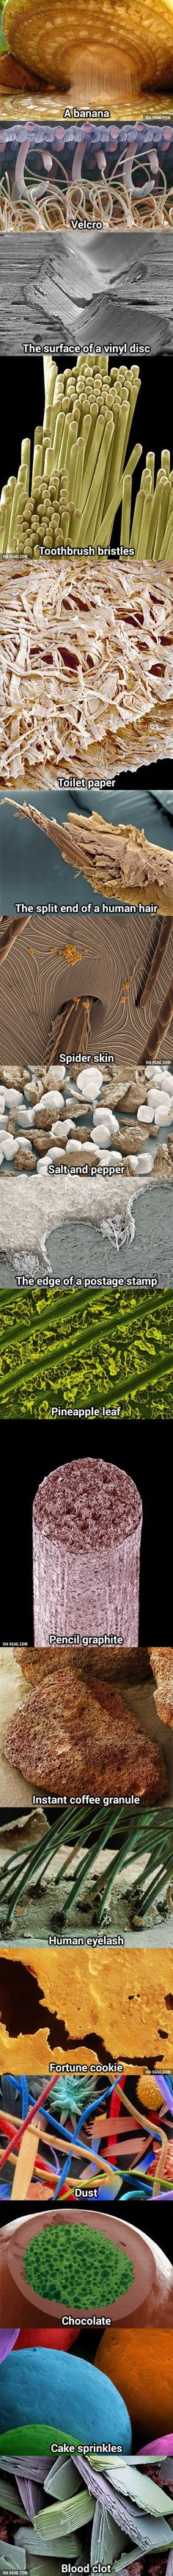 18 Average Things Made Awesome Under A Microscope. This made me go wibbly wobbly